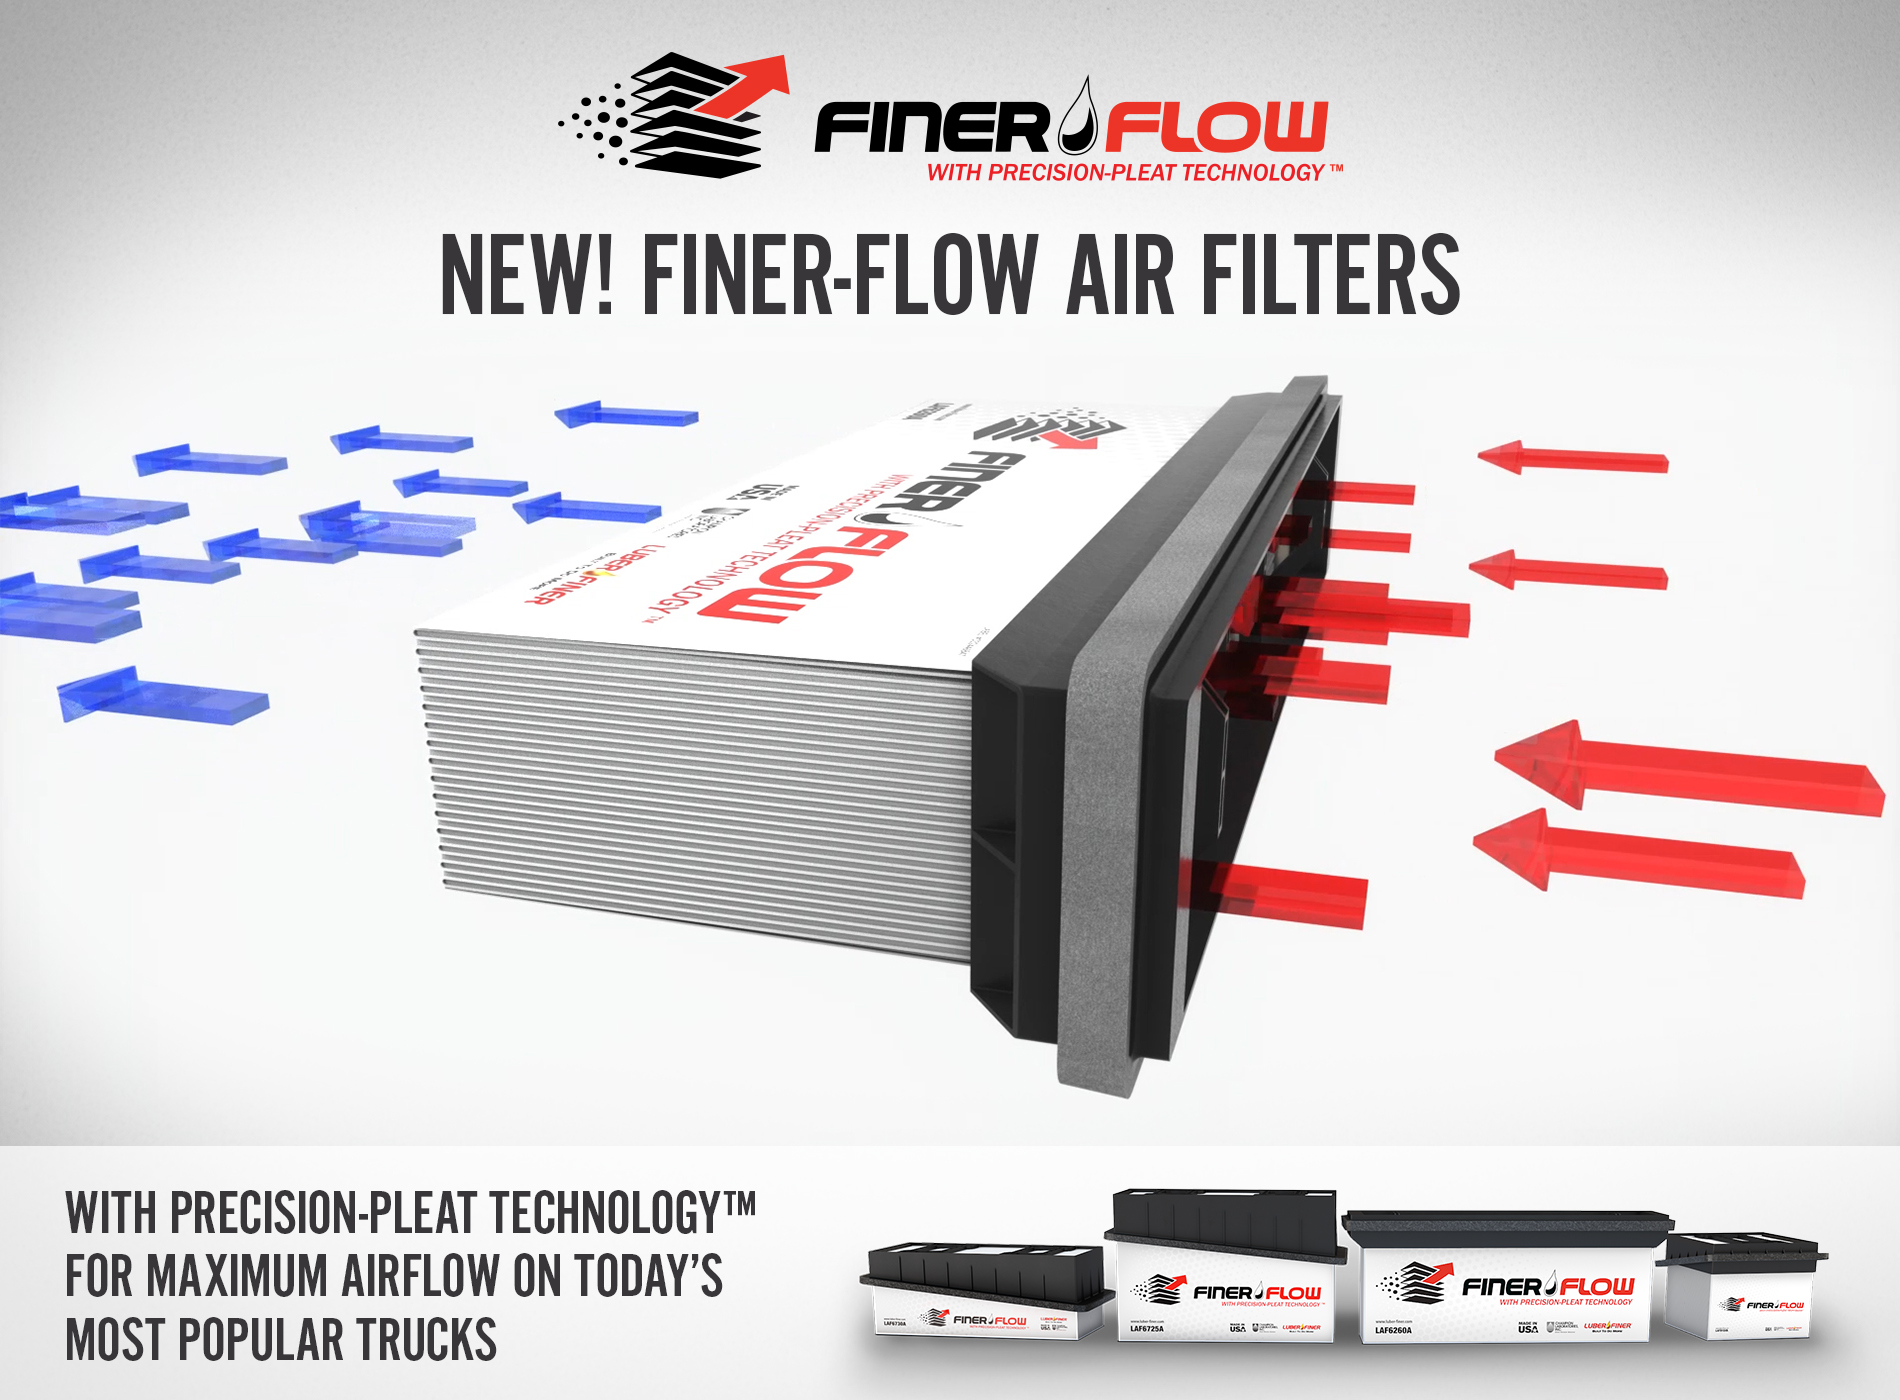 Image LUBER-FINER® LAUNCHES NEW FINER-FLOW HEAVY-DUTY AIR FILTERS TO MEET OR EXCEED OE RECOMMENDED CHANGE INTERVALS